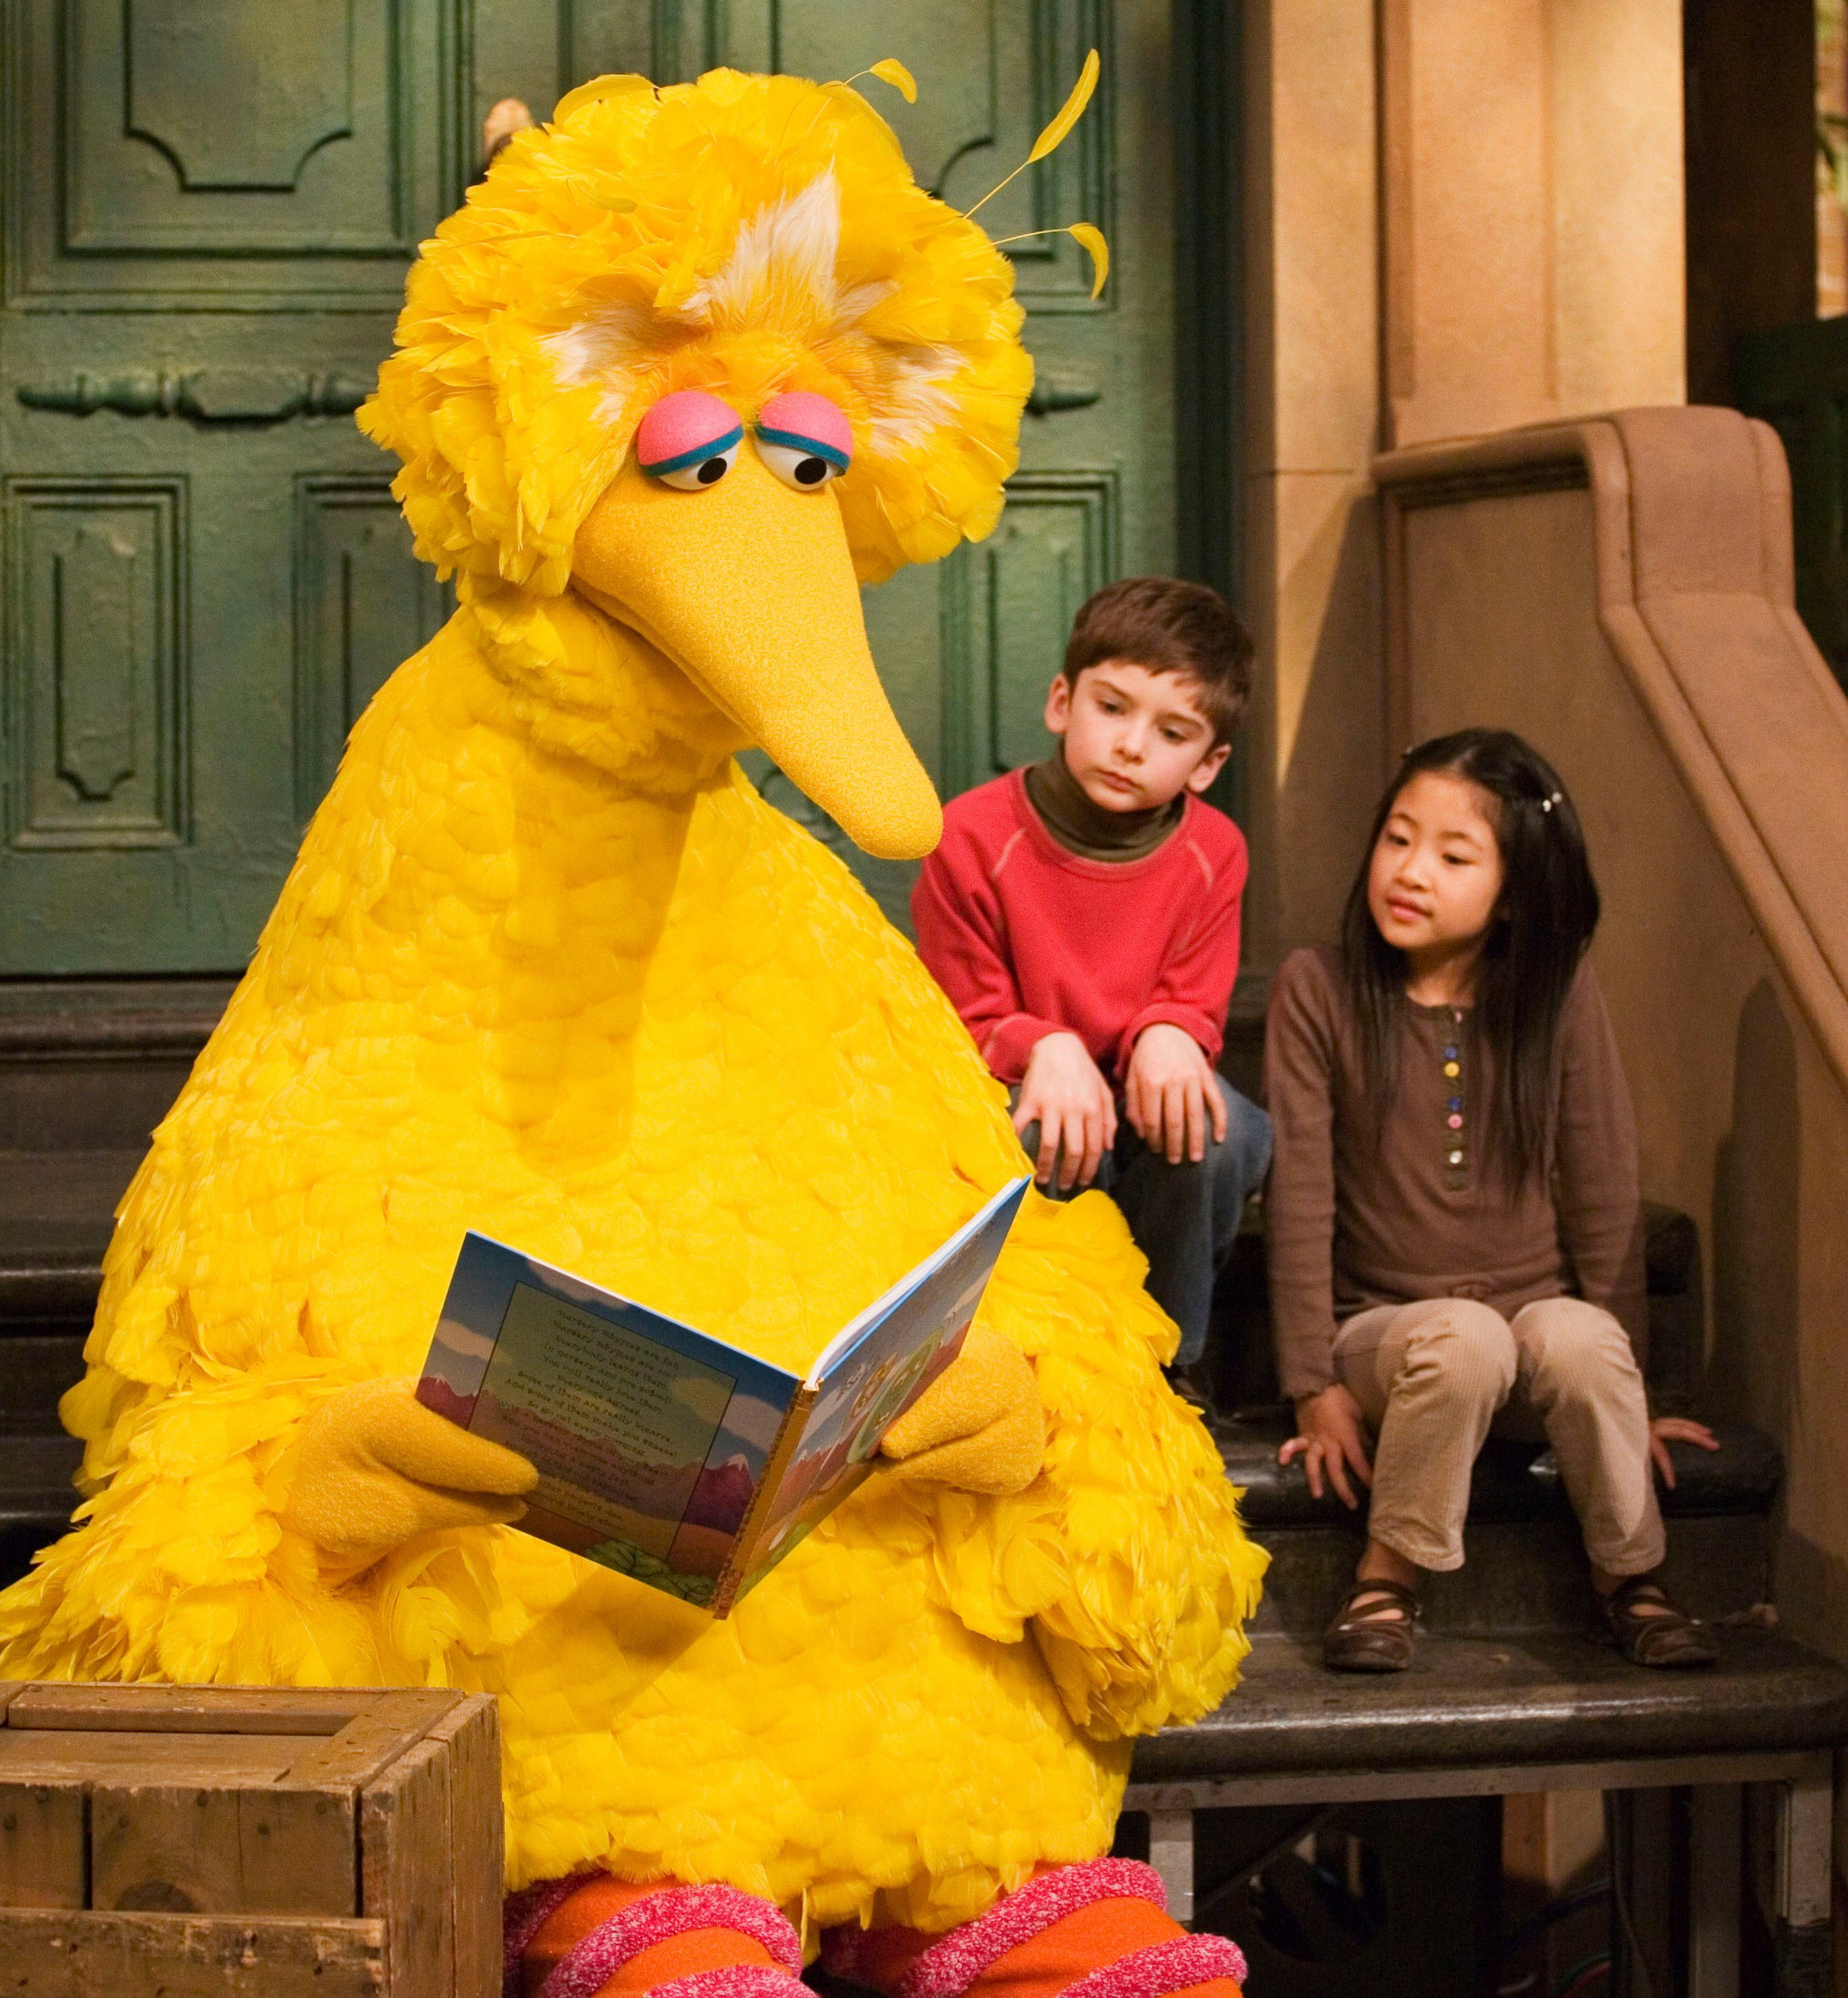 """Mandatory Credit: Photo by Mark Lennihan/AP/Shutterstock (6363967a) Caroll Spinney, Big Bird Muppet character Big Bird reads to Connor Scott and Tiffany Jiao during a taping of the children's program """"Sesame Street"""" in New York. Sesame Street continues to attract millions of viewers after 45 years on the air, appealing to both preschoolers and their parents with content that is educational and entertaining. The show has kept up with the times by making its segments faster-paced, by fine-tuning messages, and by keeping a steady flow of appearances by contemporary celebrity guests. The show first aired Nov. 10, 1969 Sesame Street 45 Years, New York, USA"""